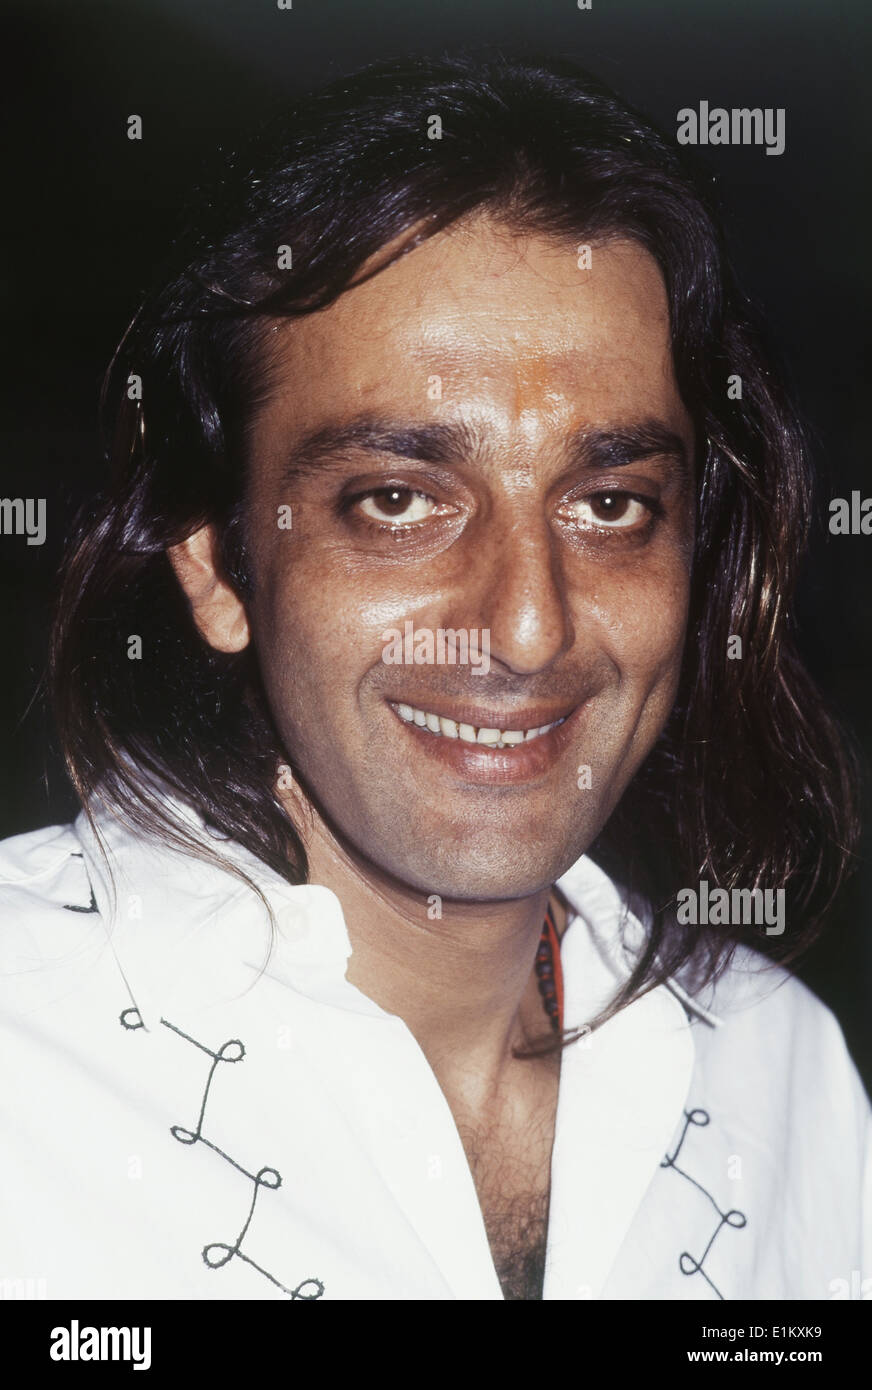 Portrait of Indian film actor Sanjay Dutt Stock Photo  69894141   Alamy Portrait of Indian film actor Sanjay Dutt